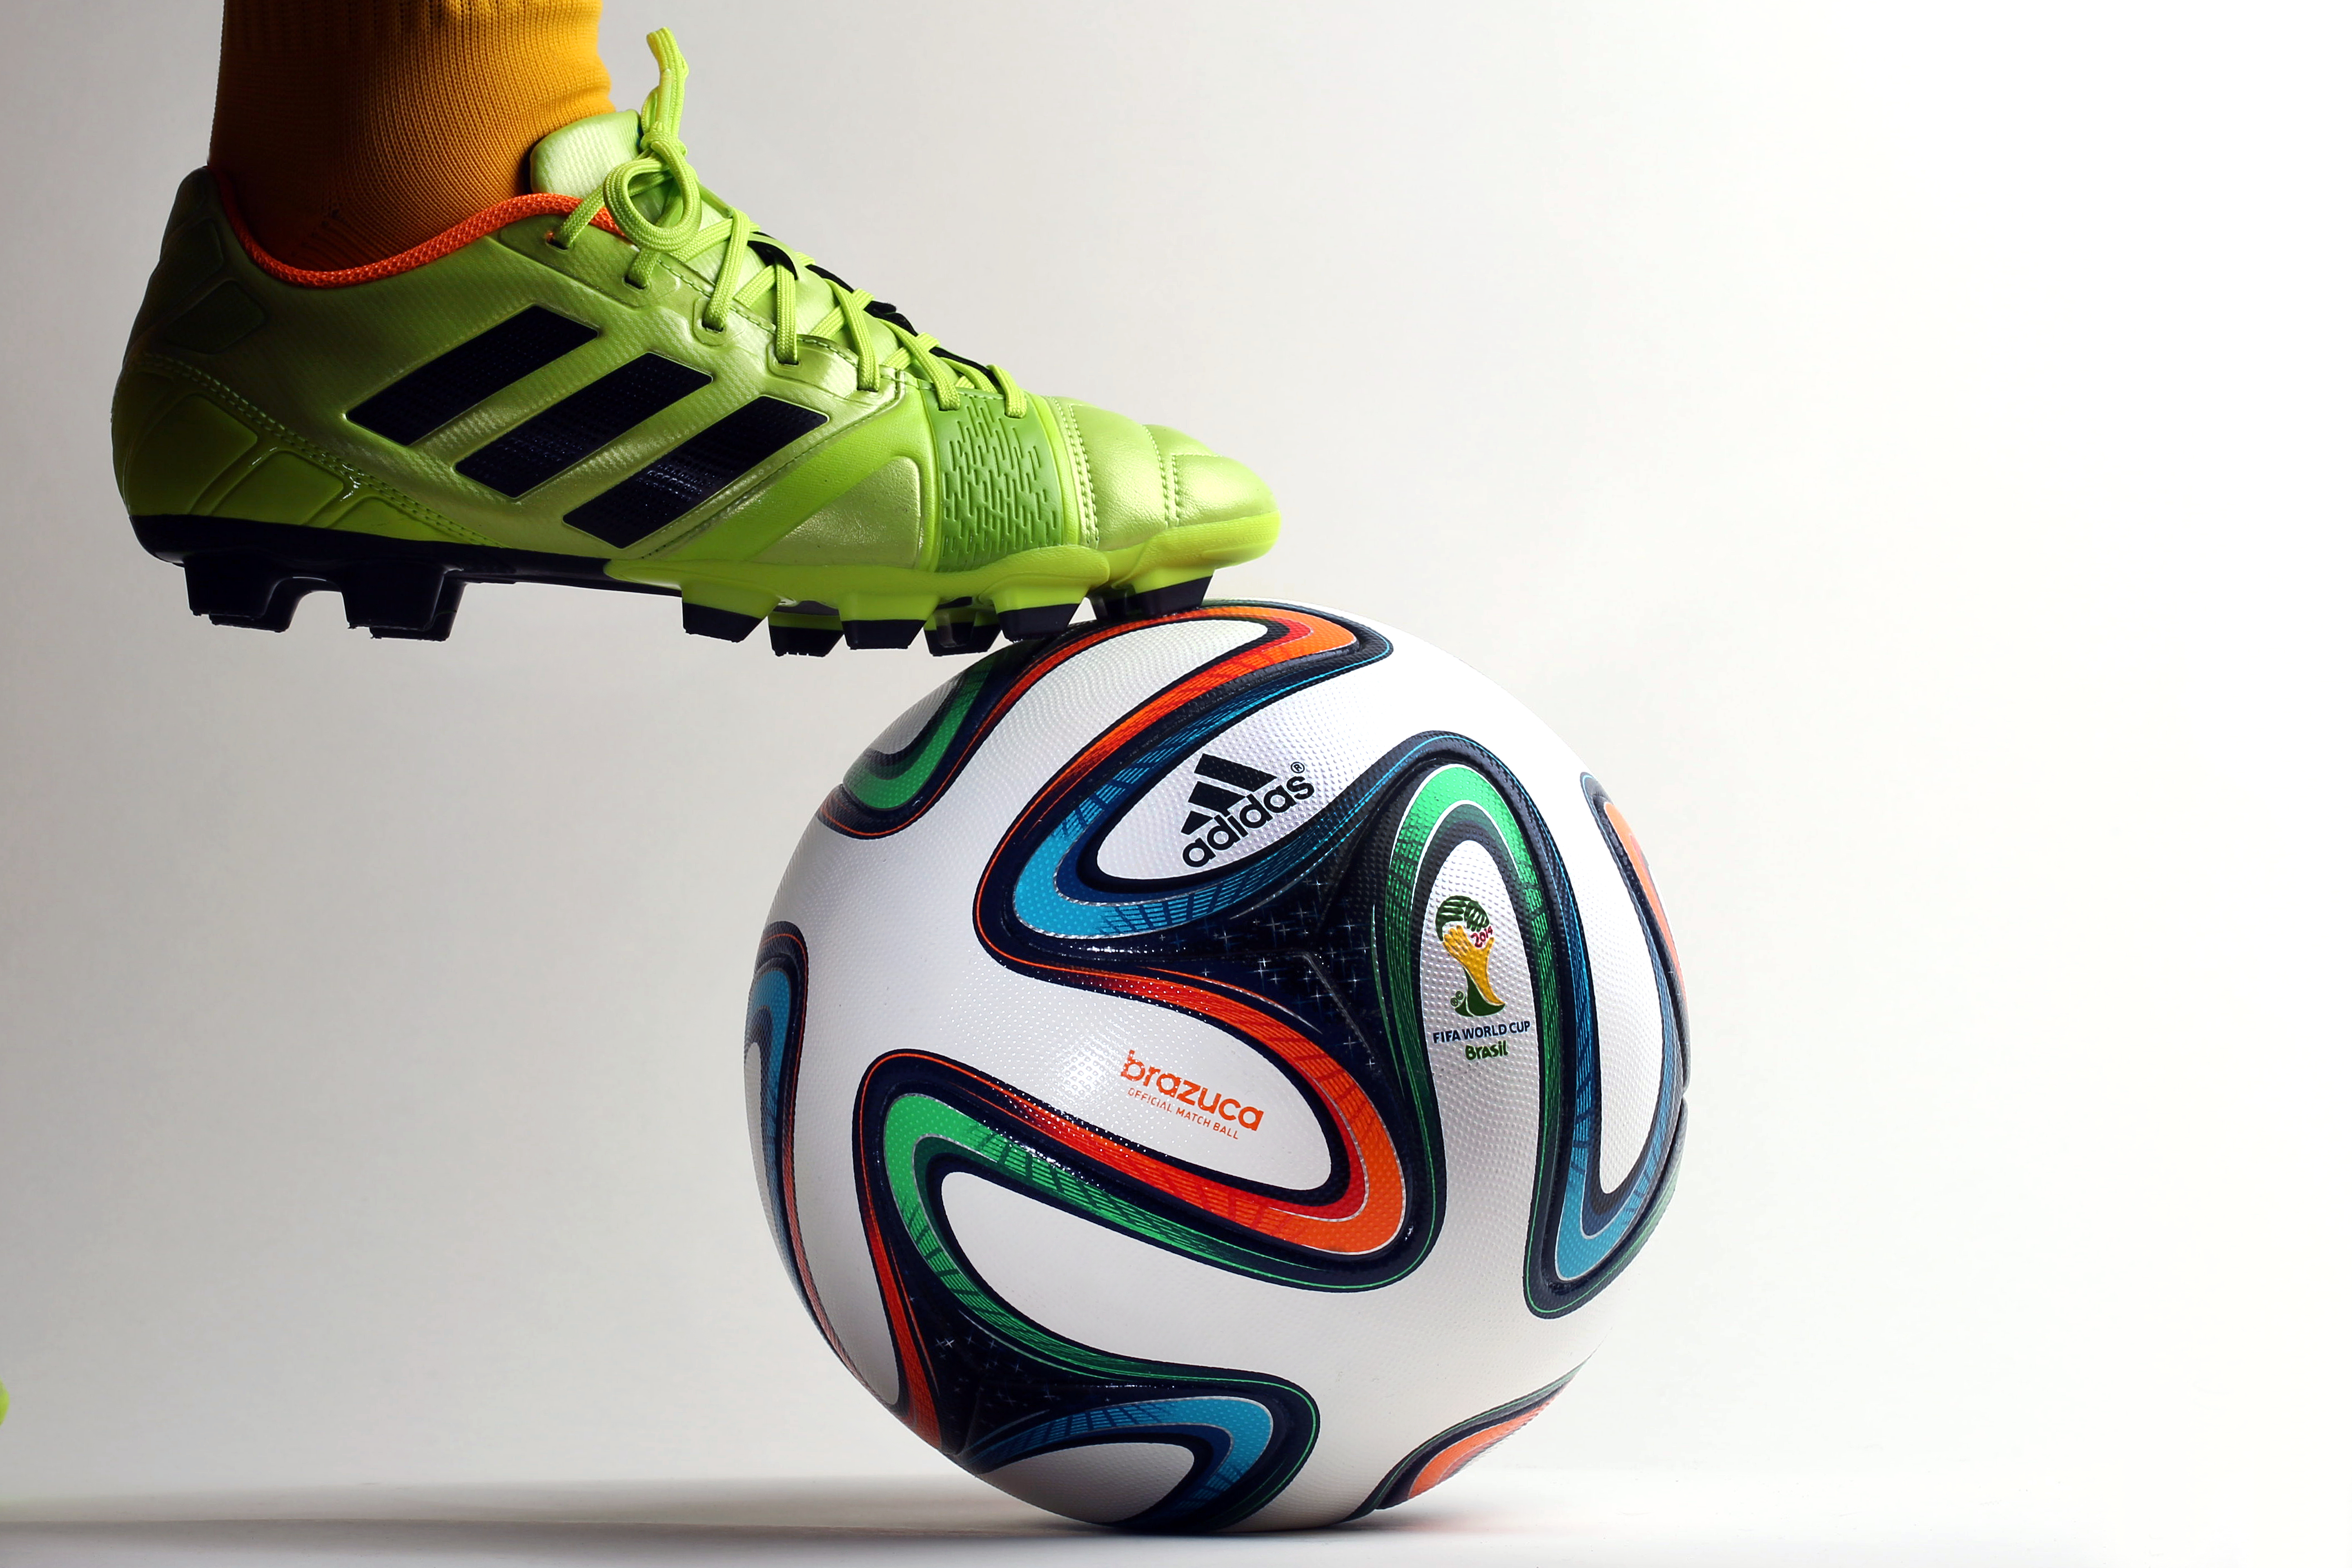 Brazuca football. The official Adidas match ball for the FIFA World Cup Brazil 2014